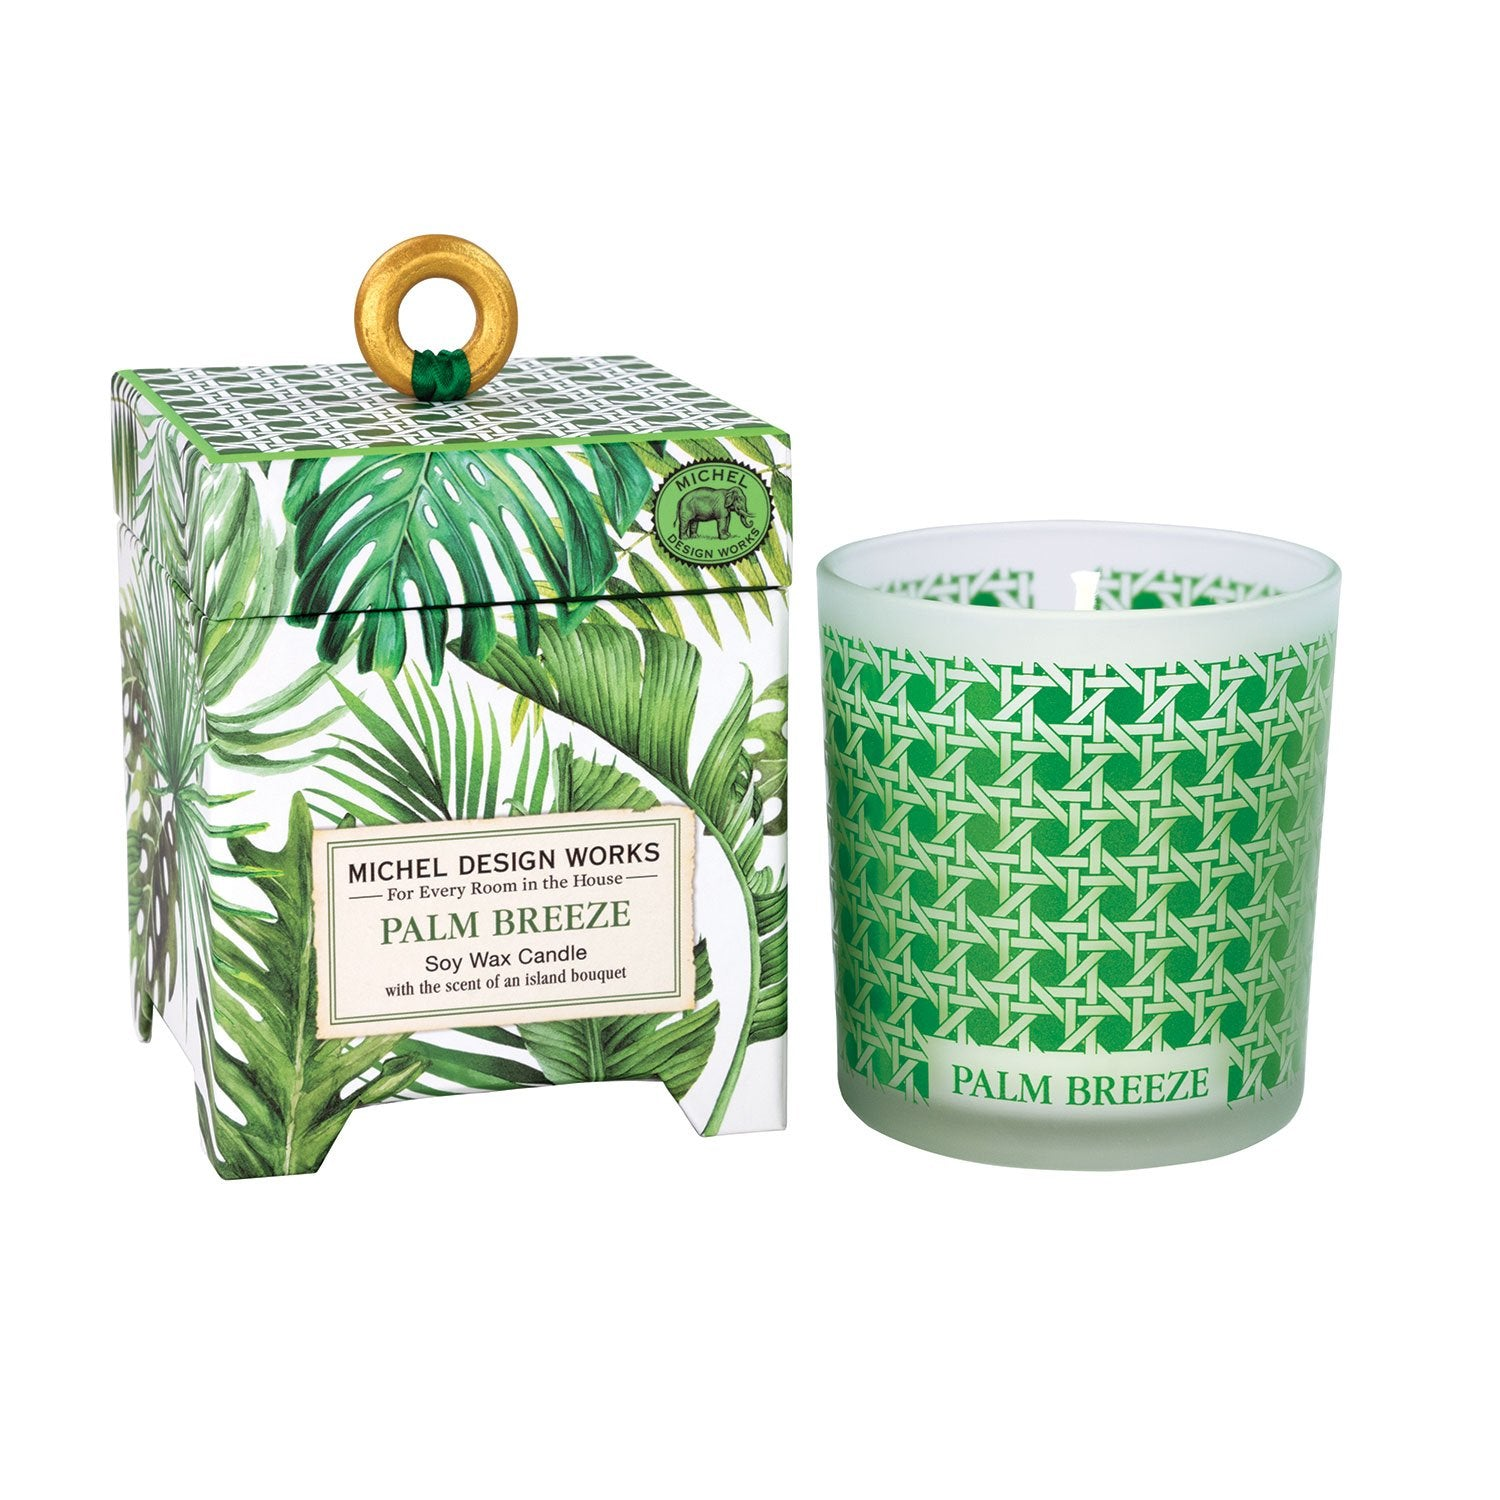 Palm Breeze 6.5 oz. Soy Wax Candle